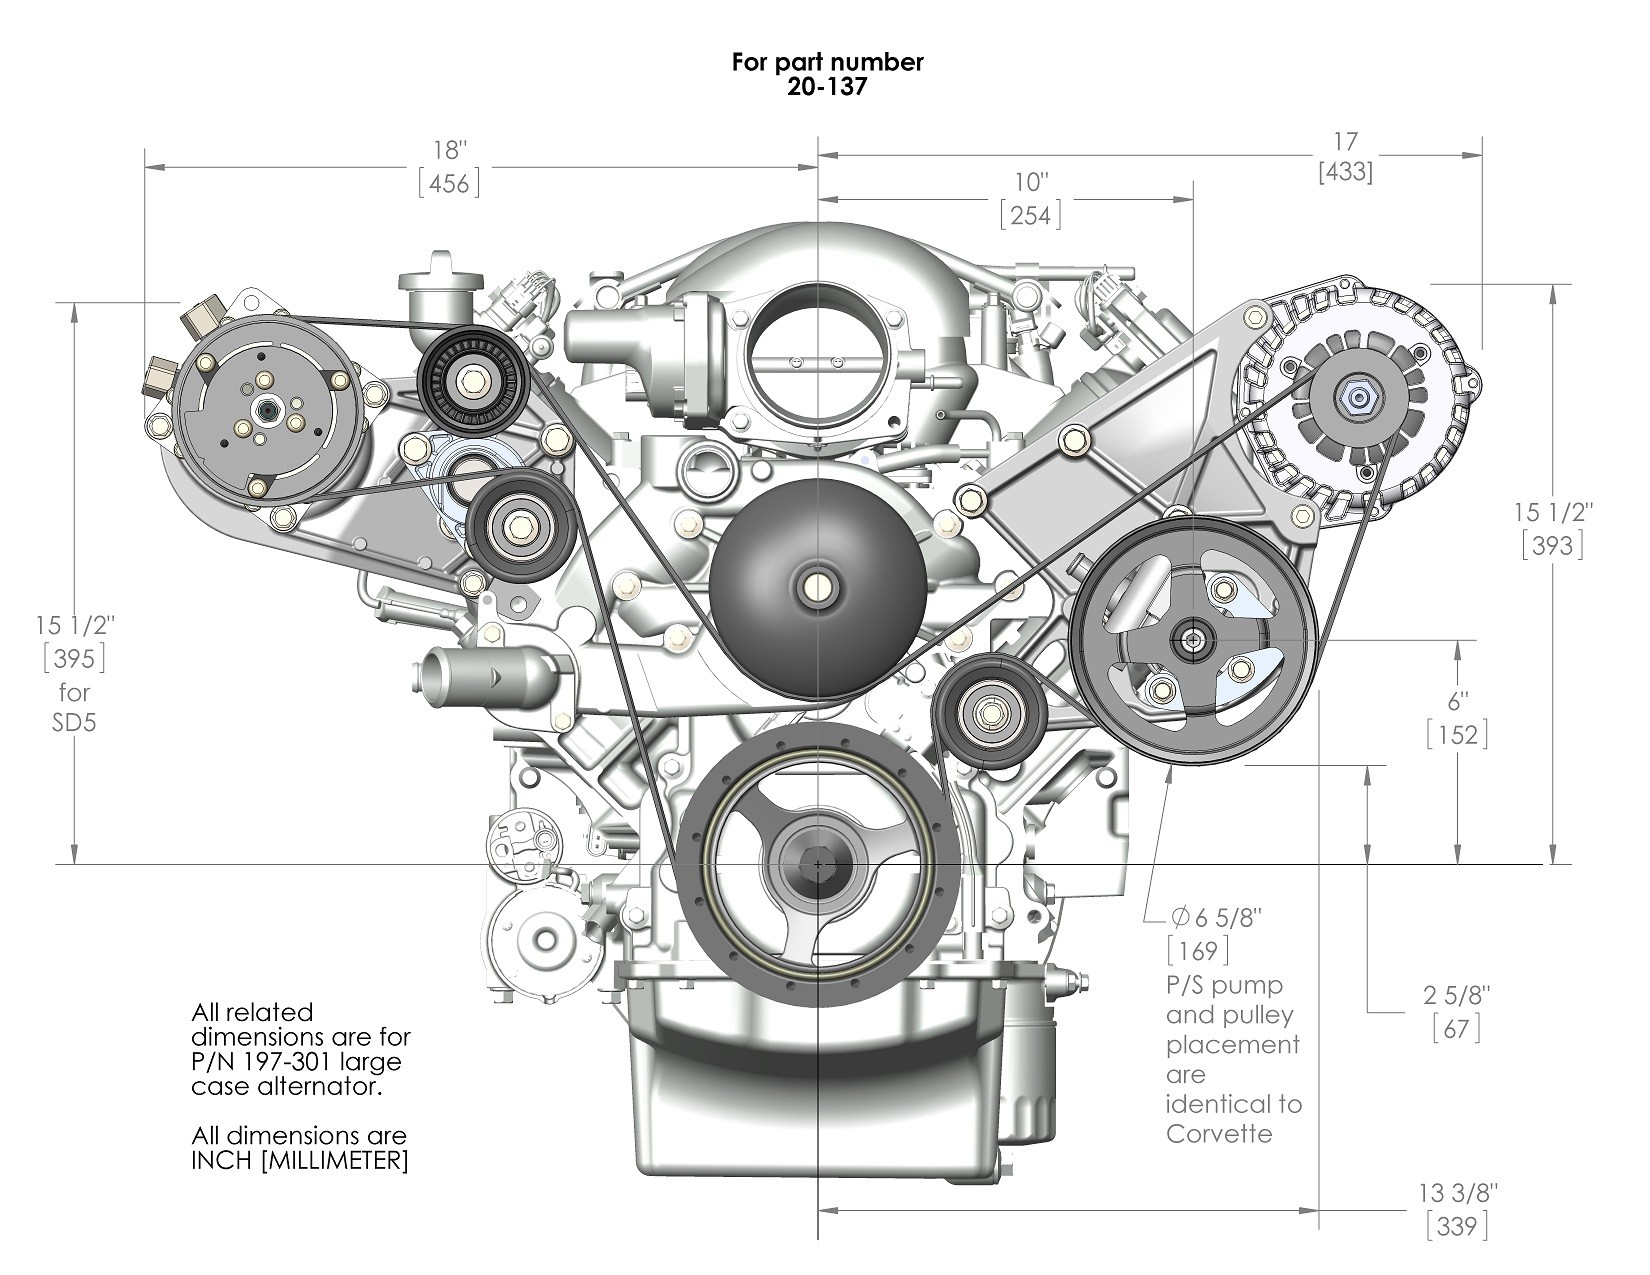 Diagram for Car Engine 20 137 Dimensions1 1650—1275 Ls Engines Pinterest Of Diagram for Car Engine